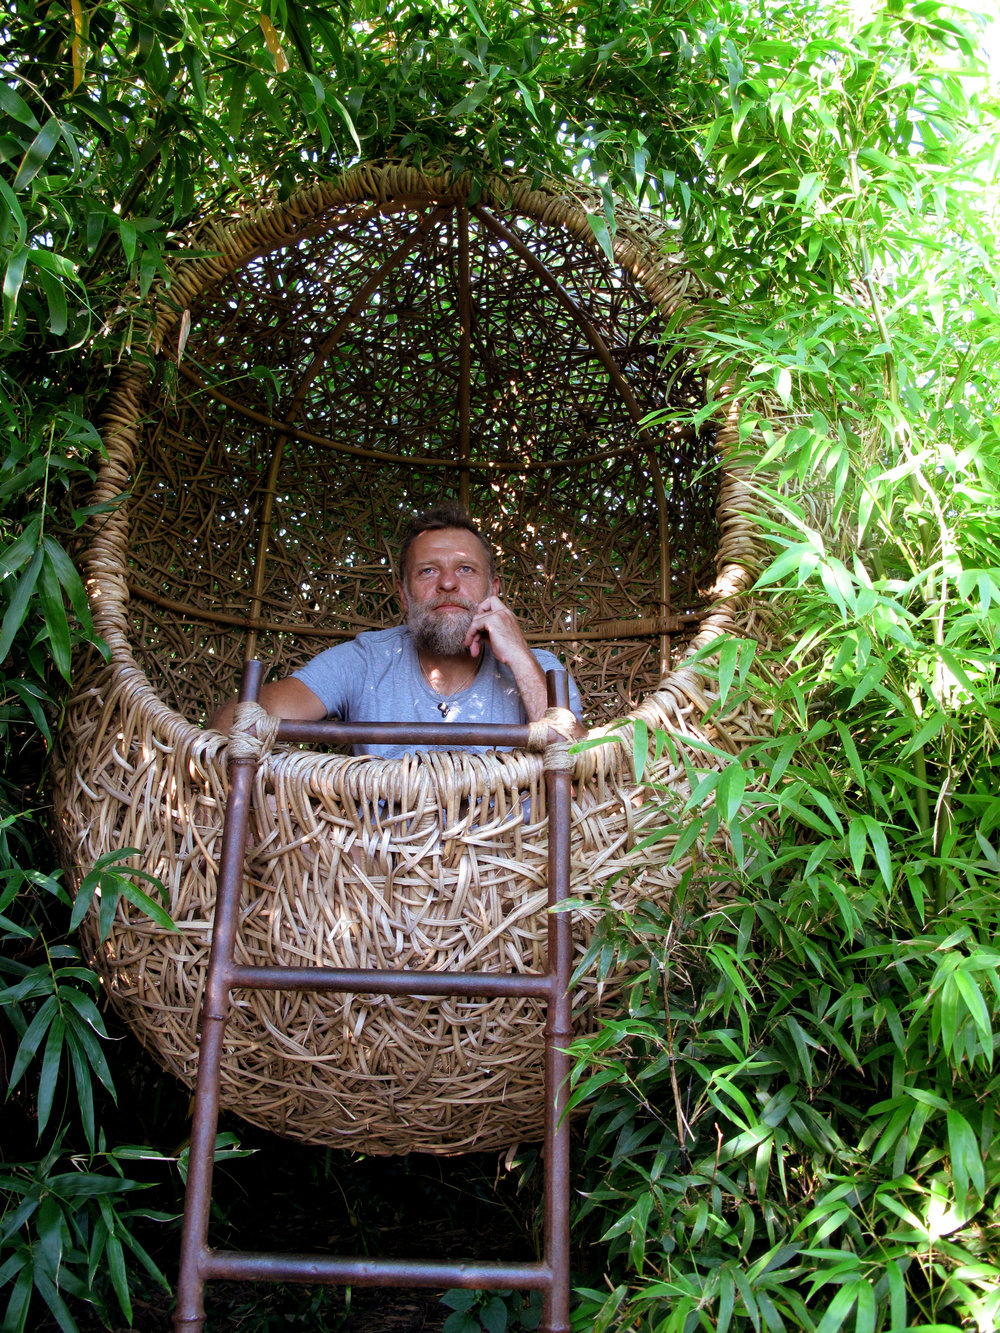 Porky Hefer sits in one of his weaver's nests. Photo courtesy of Southern Guild.